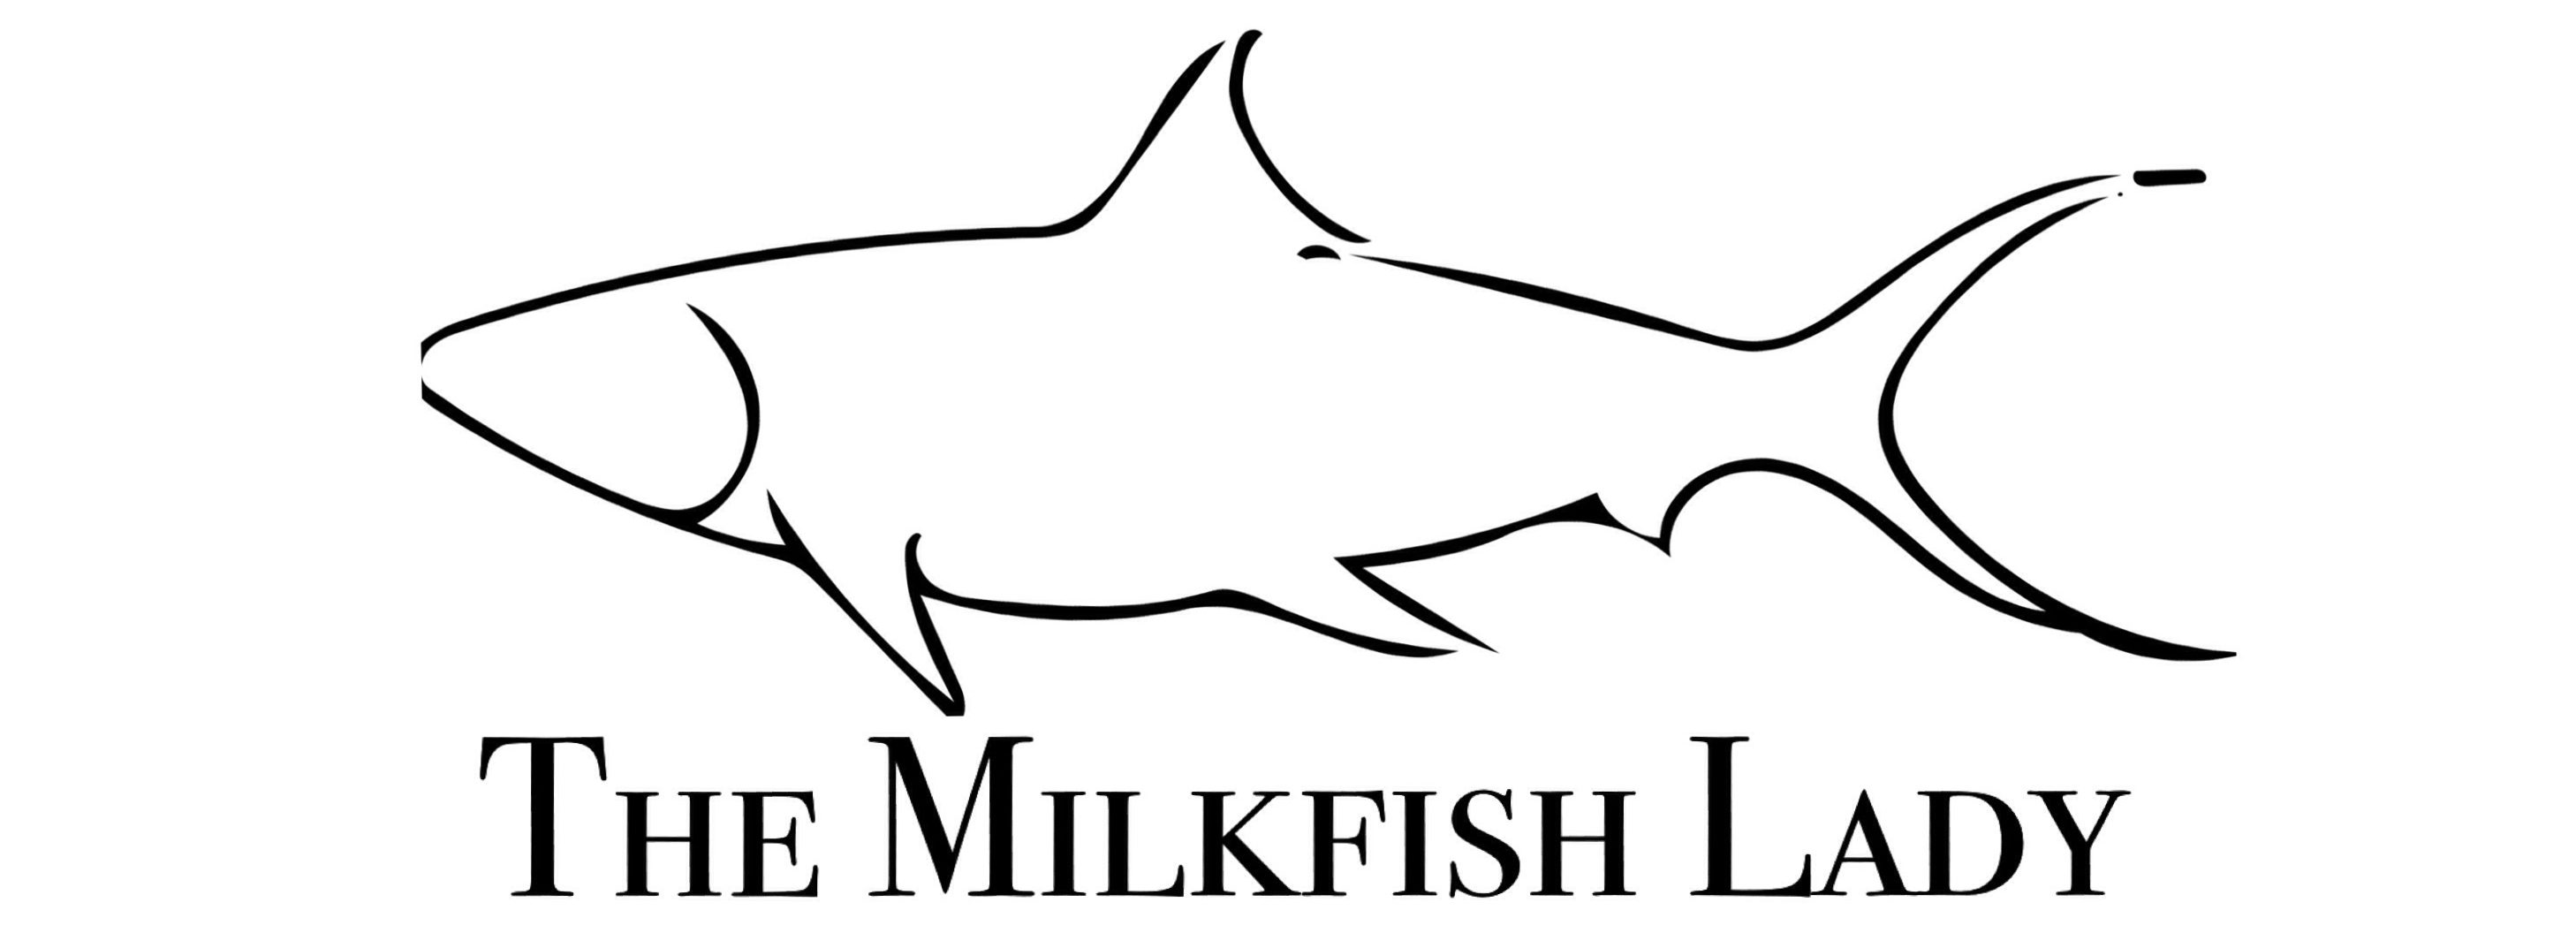 THE MILKFISH LADY